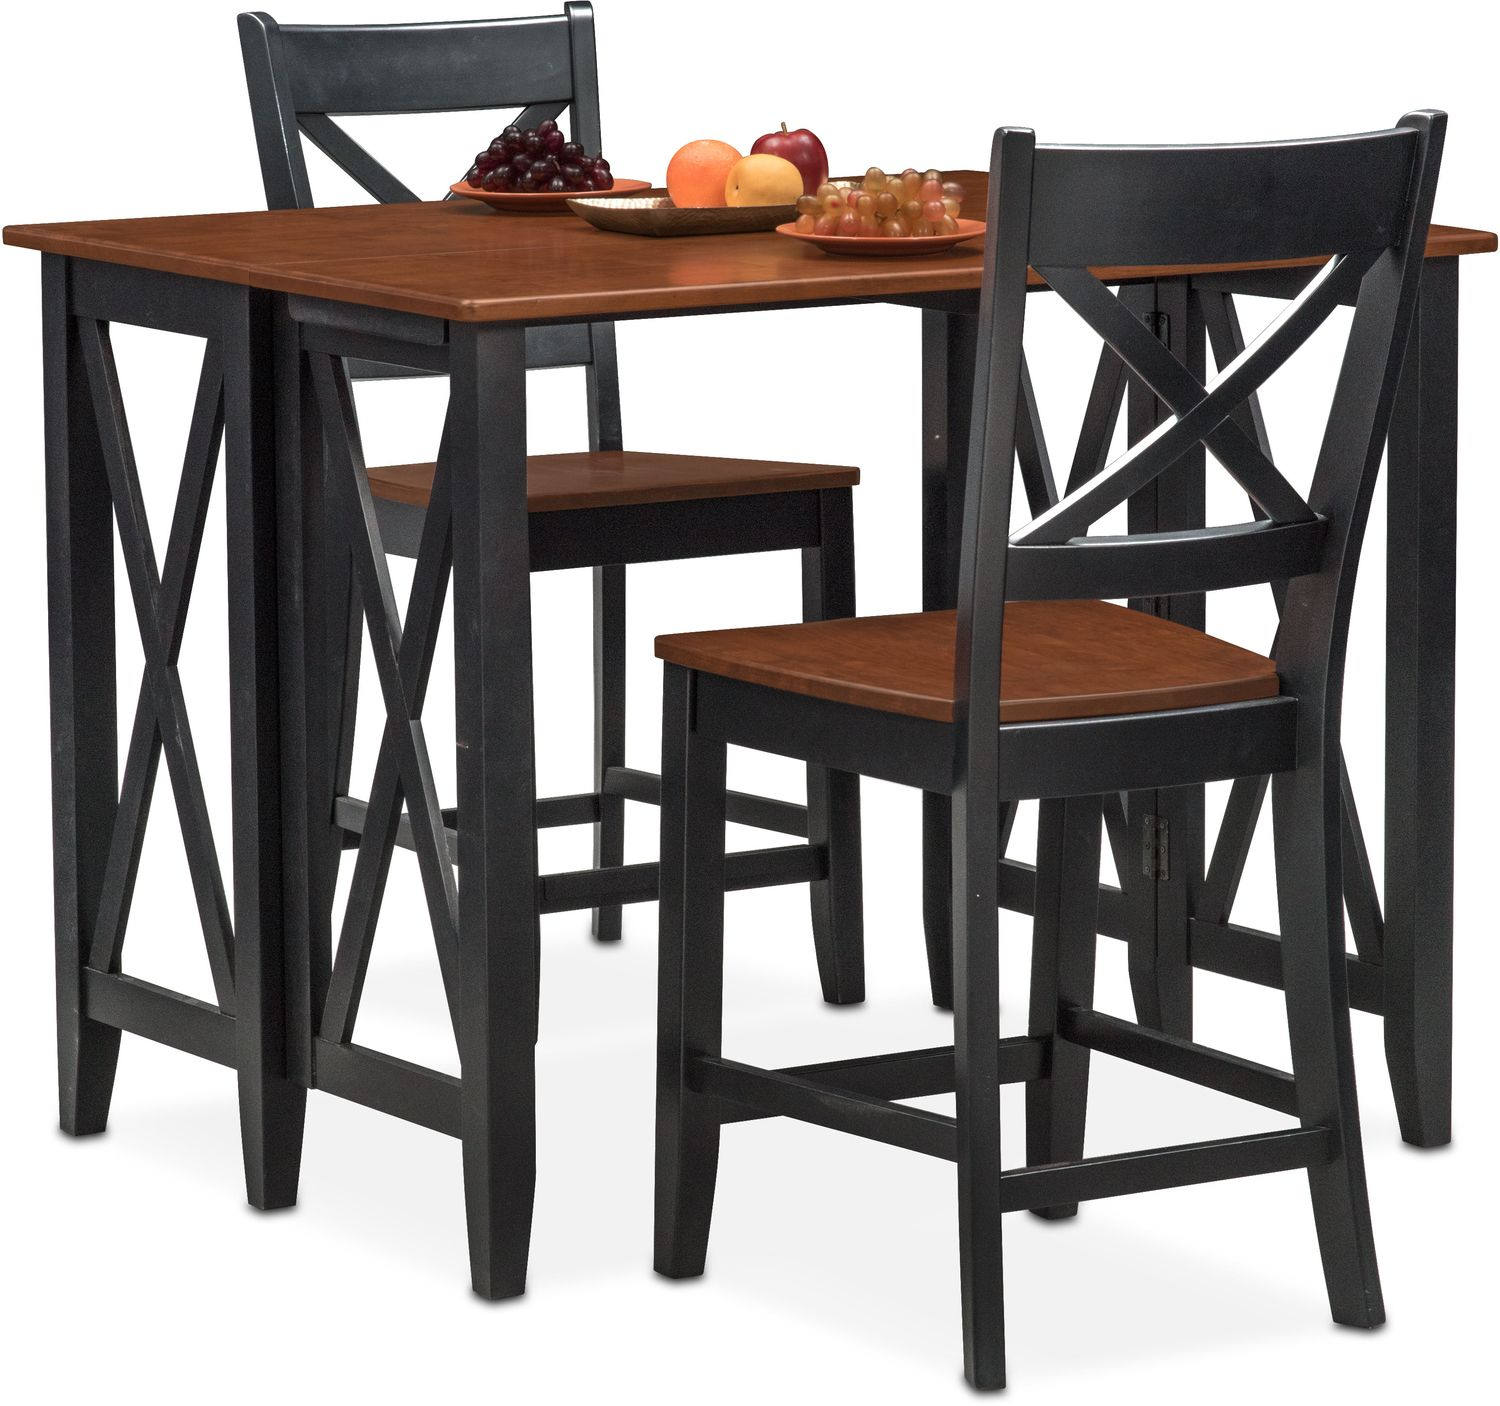 Nantucket Breakfast Bar And 2 Counter Height Side Chairs Black Cherry